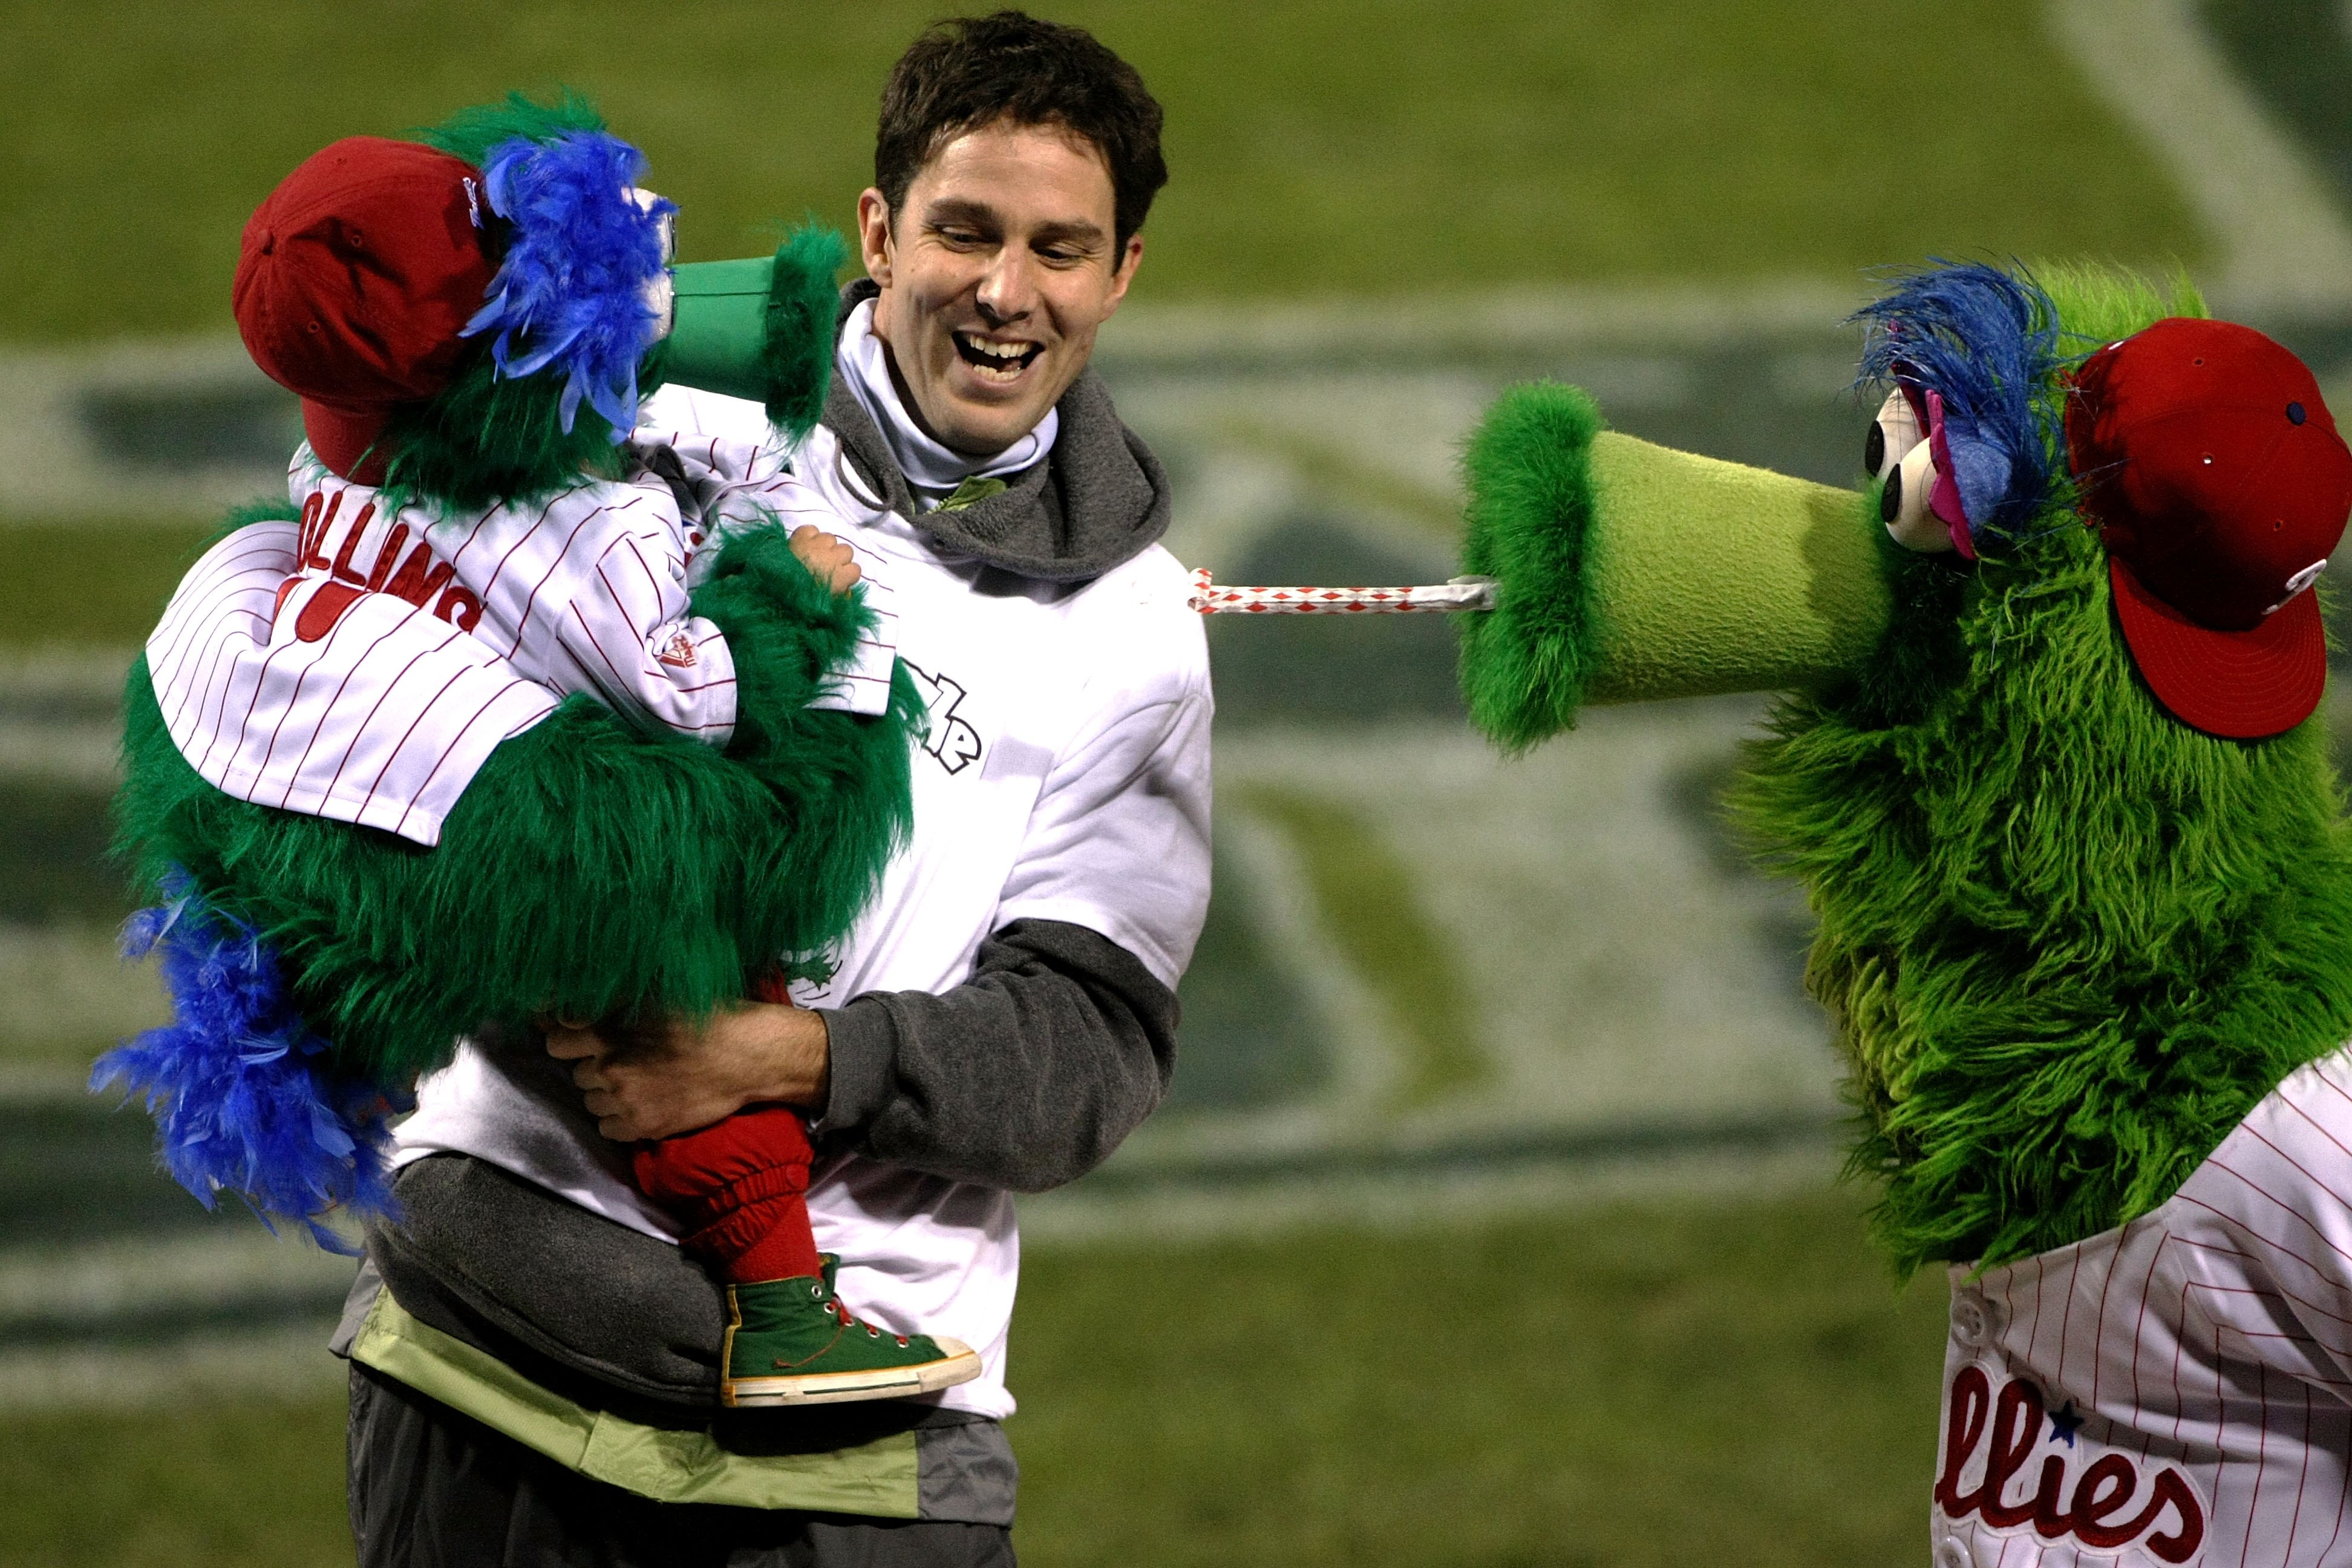 PHILADELPHIA - OCTOBER 29:  The Philly Phanatic (R), mascot of the Philadelphia Phillies interacts with a young fans dresses in a Phanatic outfit against the Tampa Bay Rays during the continuation of game five of the 2008 MLB World Series on October 29, 2